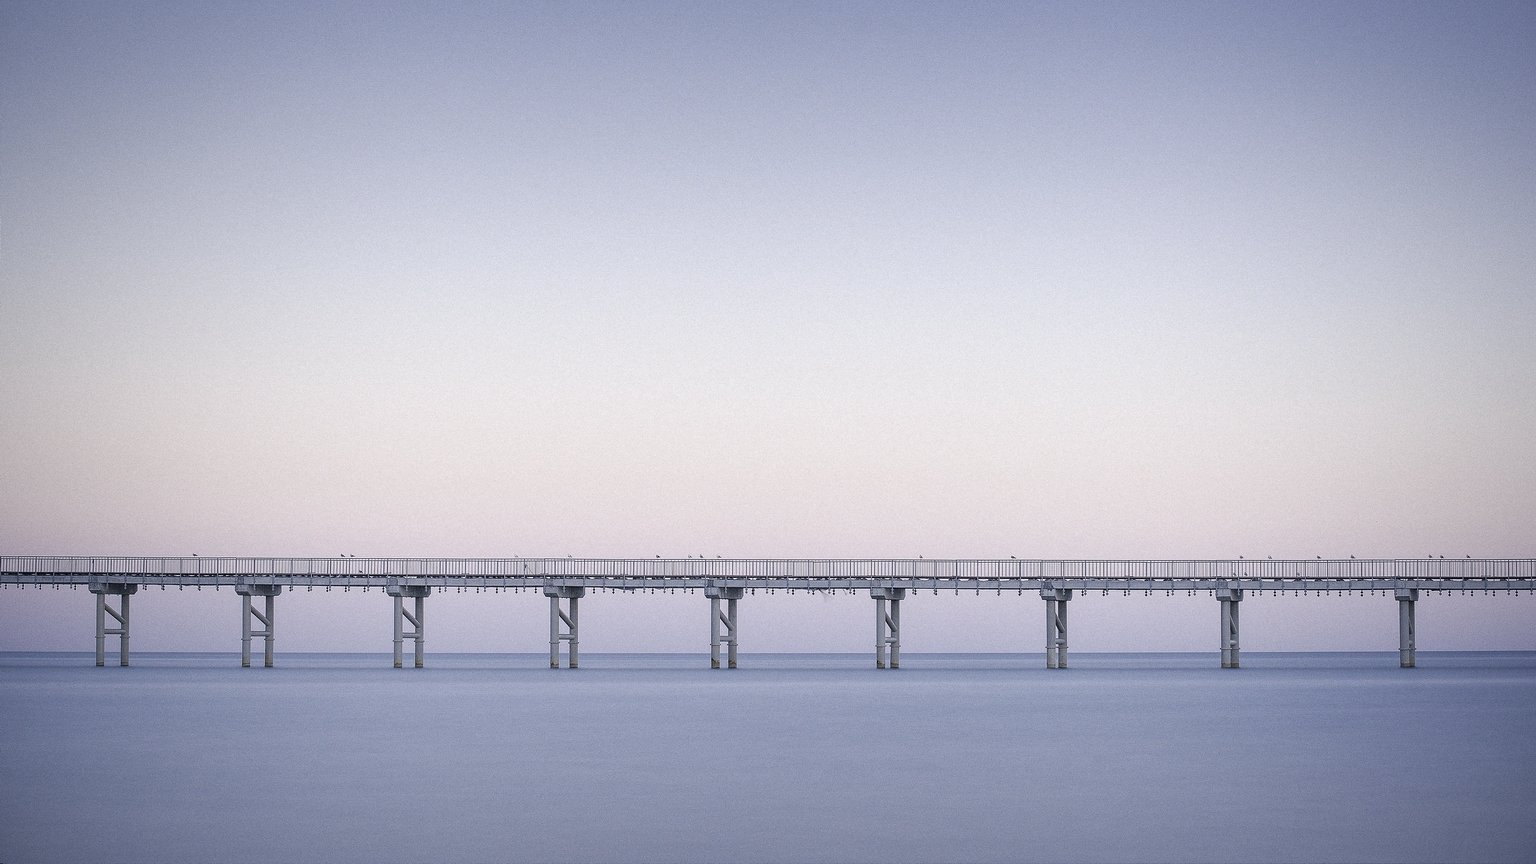 dream,landscape,nature,alexandrucrisan,scenery,countryside,far,away,dreamland,magic,sound,lonely,waterscape,storm,blacksea,marine,ship,ghost,remains,waterspace,ocean,coast,long,exposure,le,filter,nd,blue,finart,limitededition,artphotography,bridge,bridgeo, Crisan Alexandru